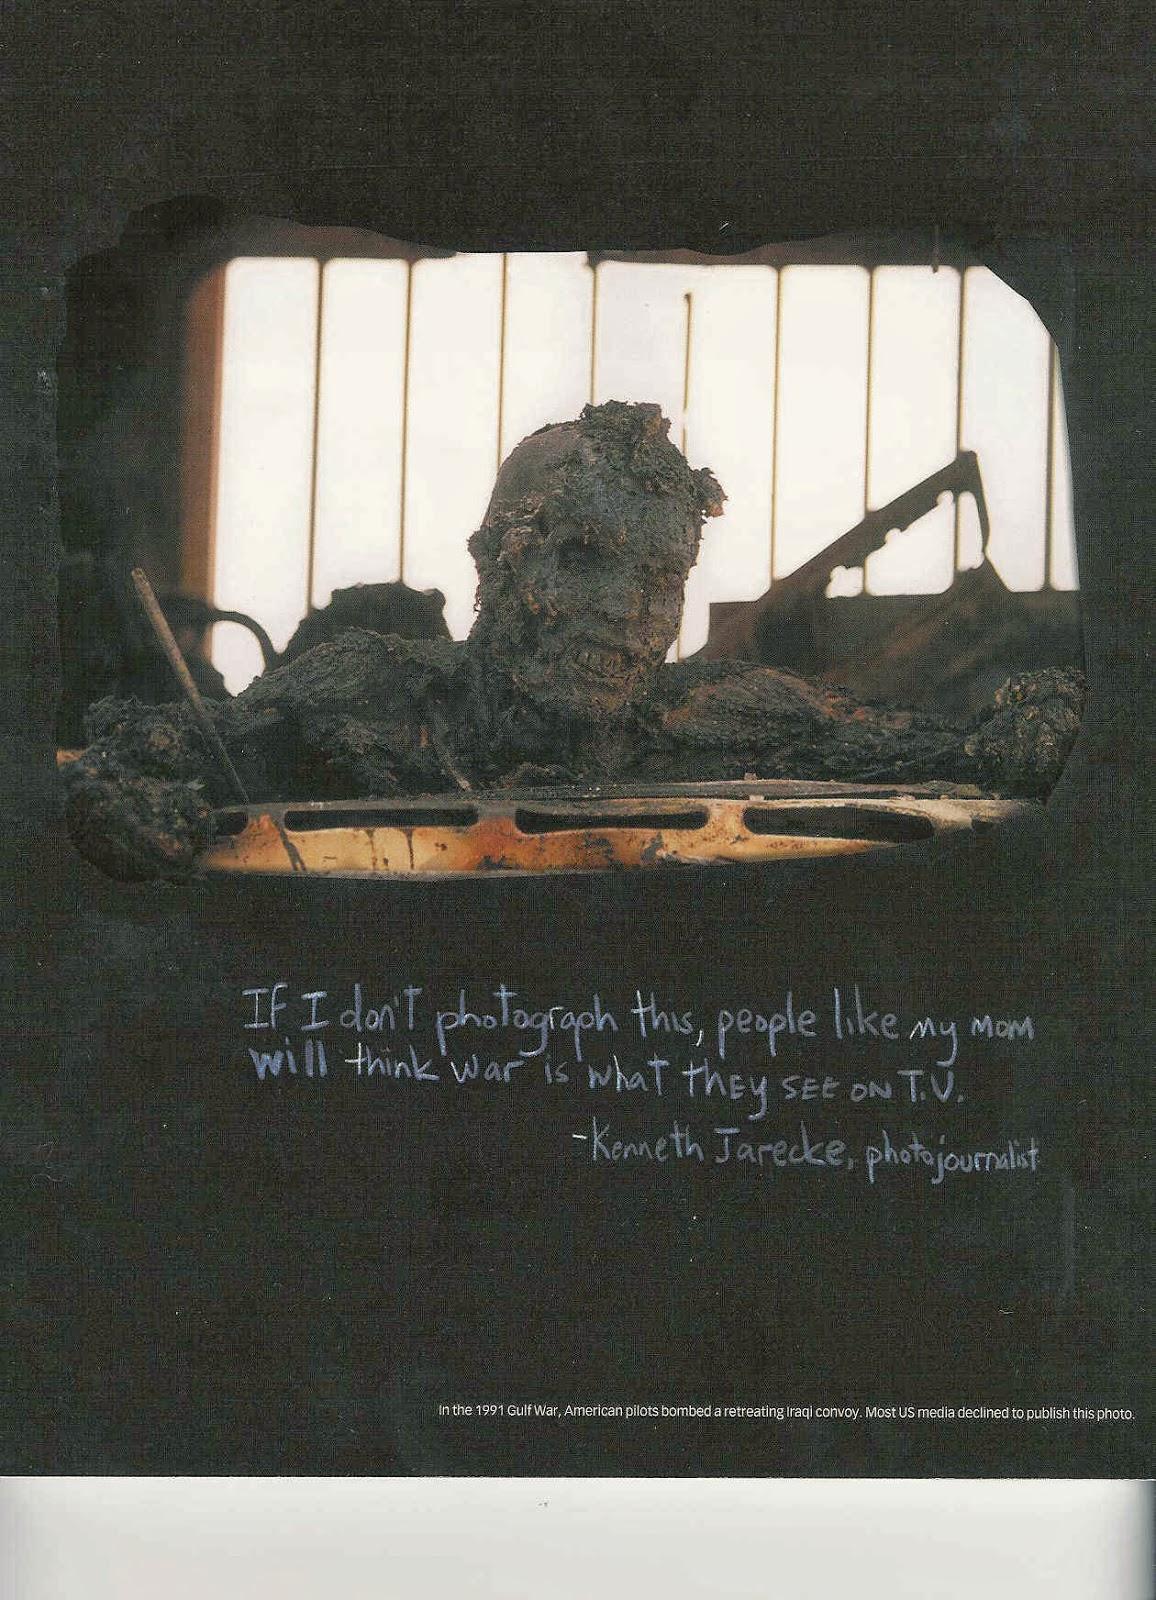 The Death of an Iraqi soldier, Highway of Death, 1991